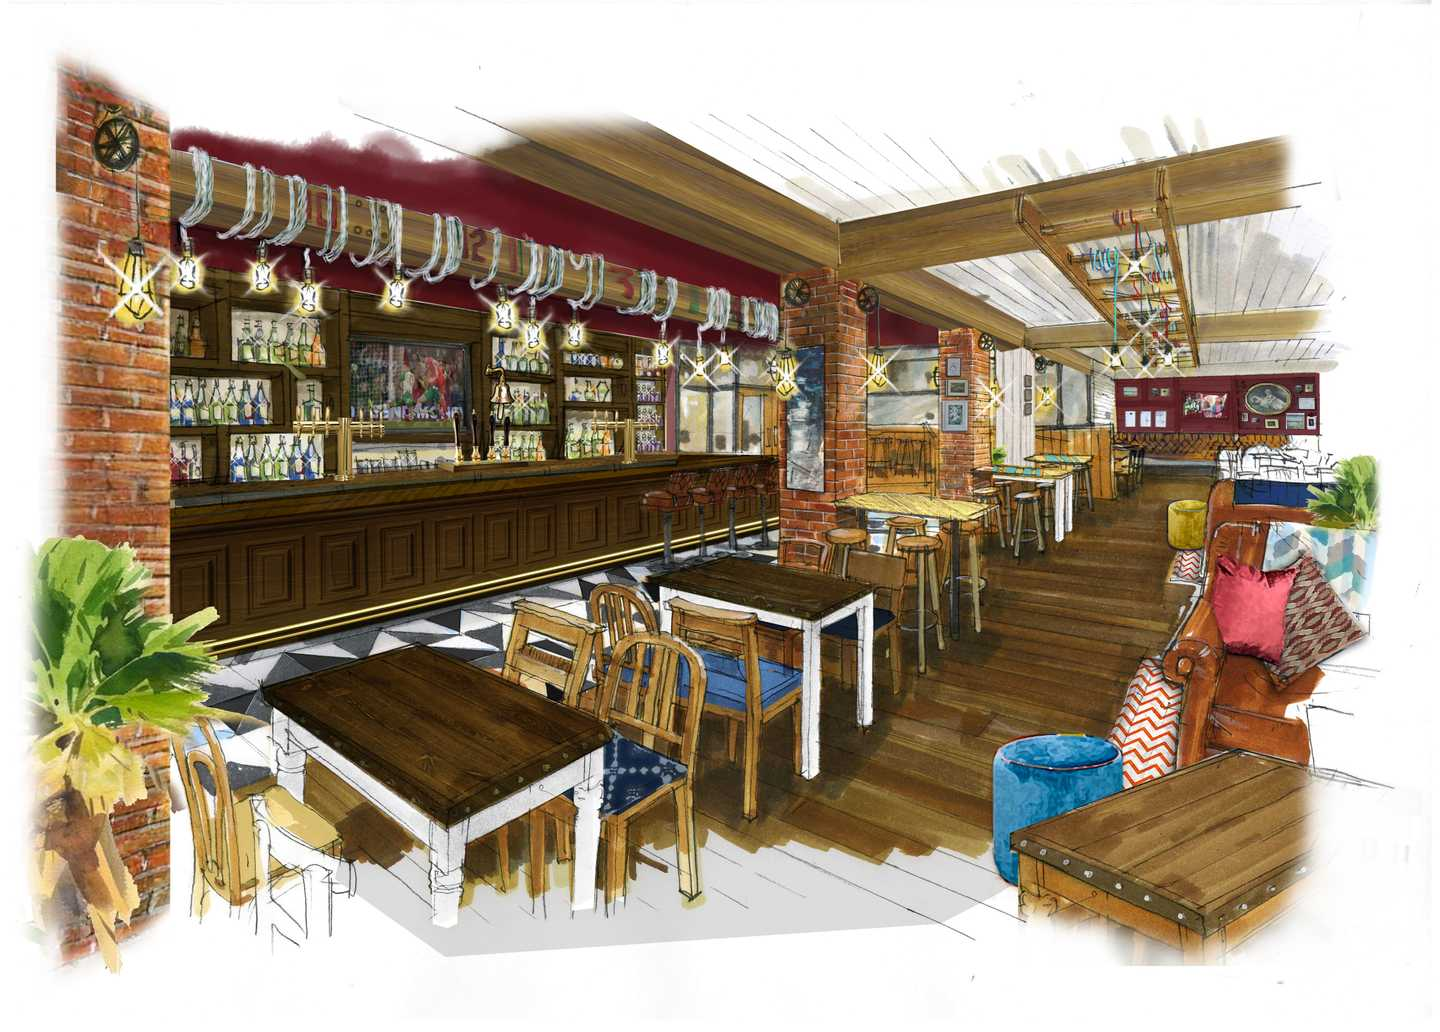 Artist's impression of the HMS Glendower Pub